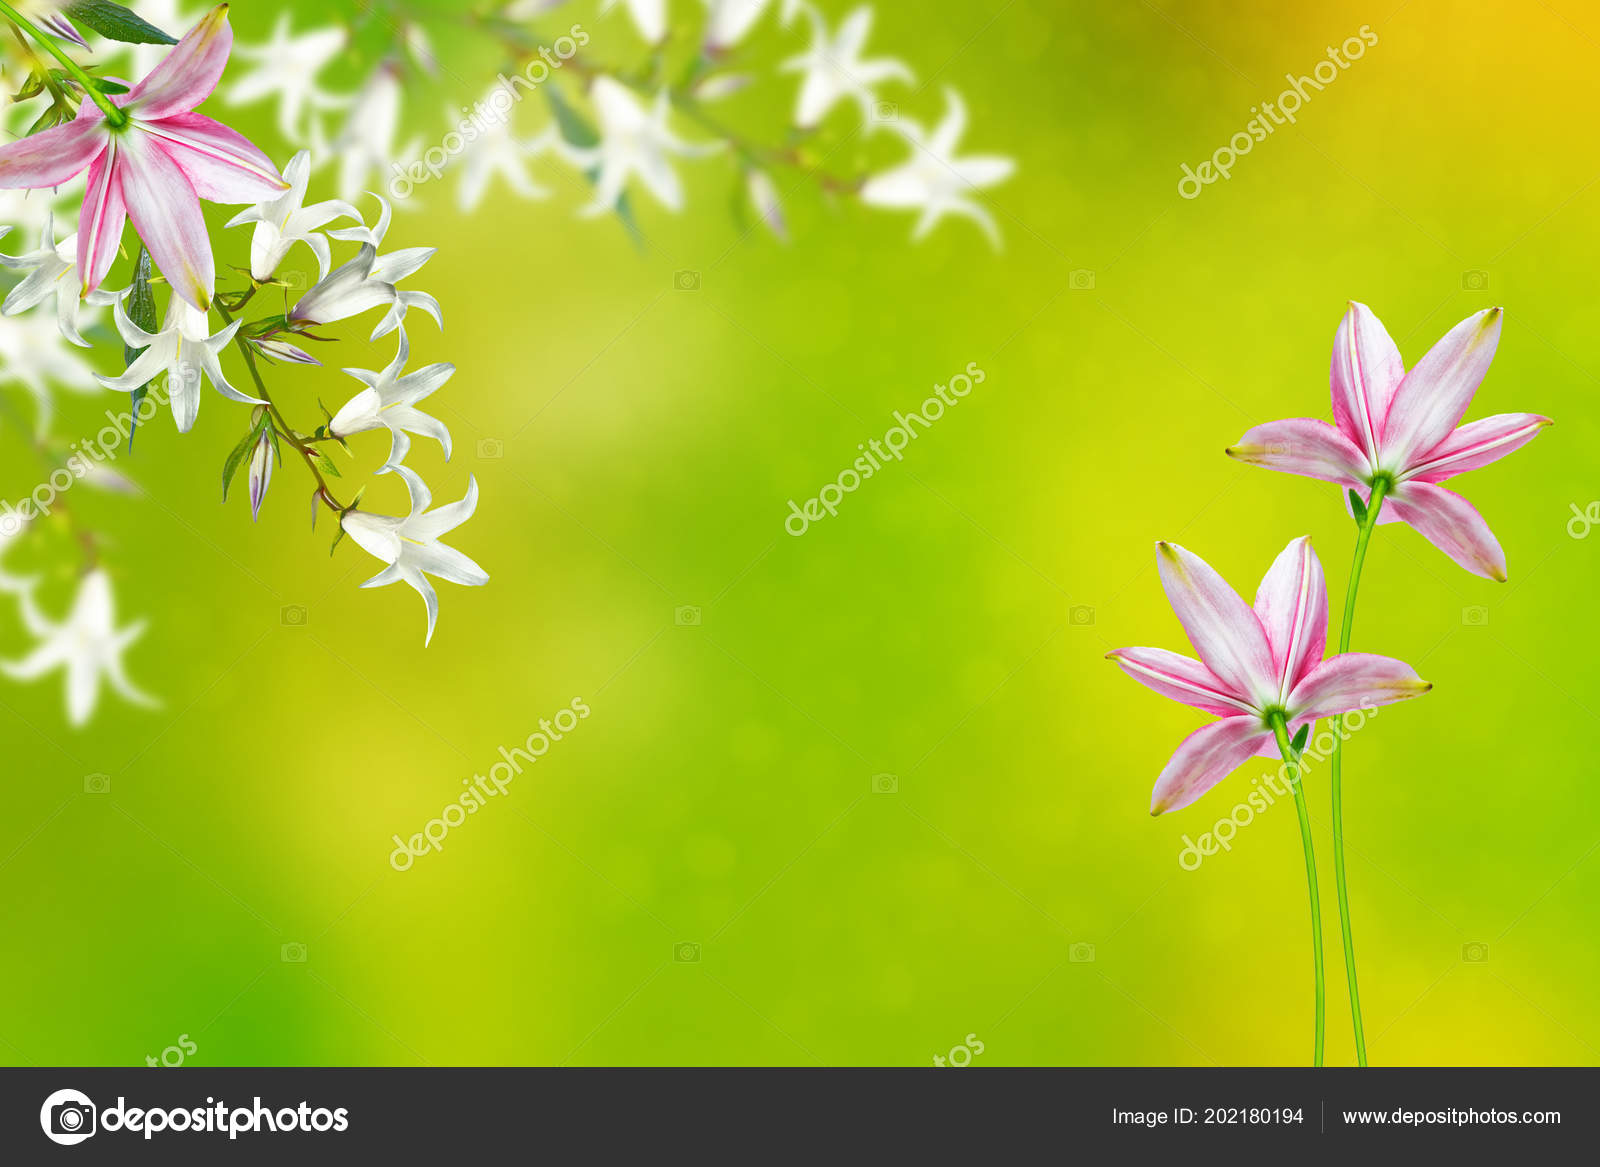 Floral Background Bright Spring Flowers Bells Stock Photo